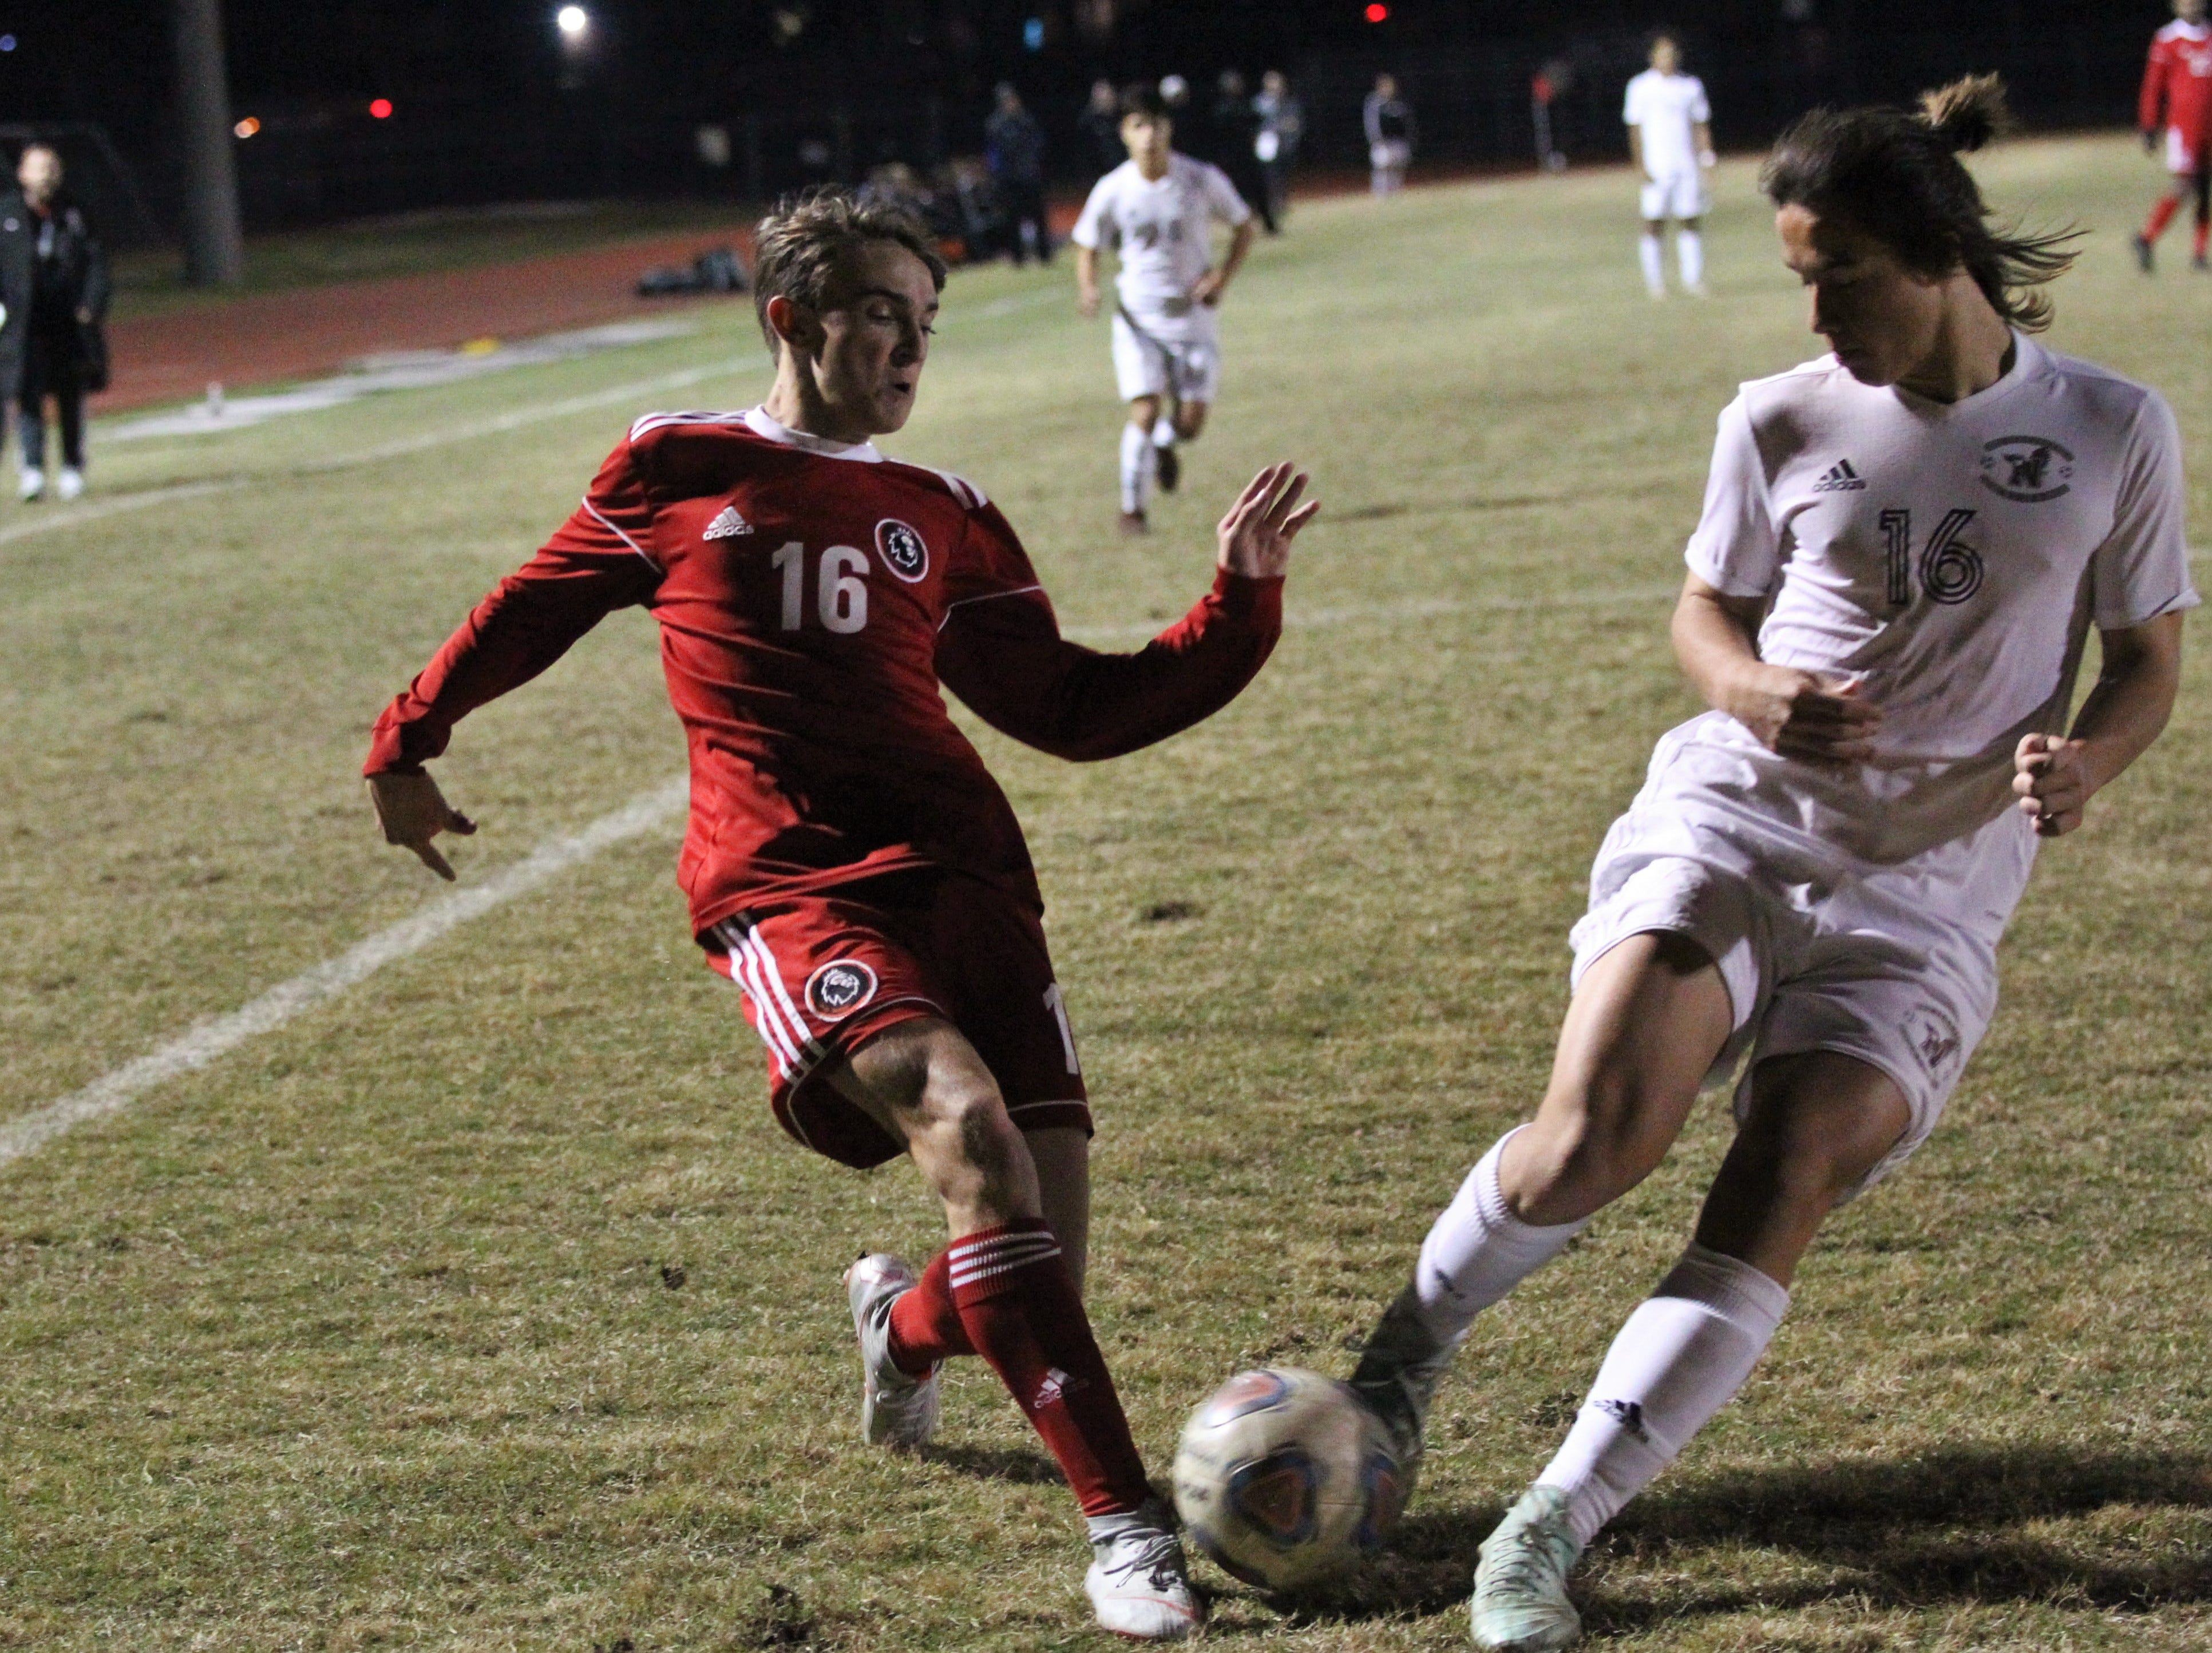 Leon's Joey Lescher has a pass disrupted as the Lions' boys soccer team beat Niceville 1-0 in a Region 1-4A semifinal on Feb. 9, 2019.